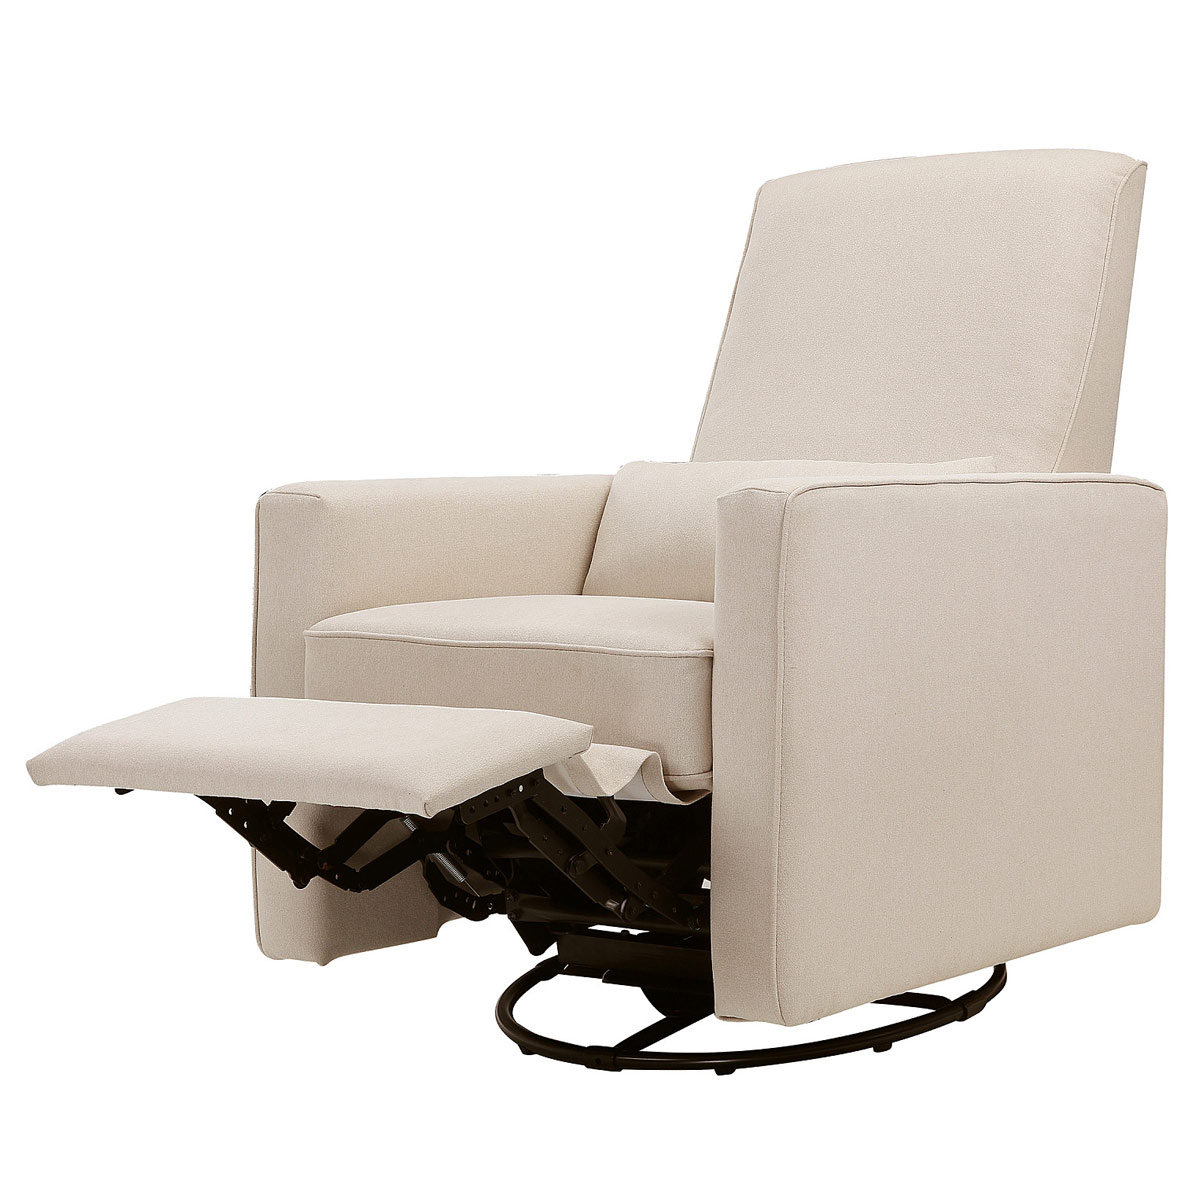 DaVinci Piper All-Purpose Upholstered Recliner in Cream Finish with Cream Piping FREE SHIPPING  sc 1 st  Simply Baby Furniture & DaVinci Piper All-Purpose Upholstered Recliner in Cream Finish ... islam-shia.org